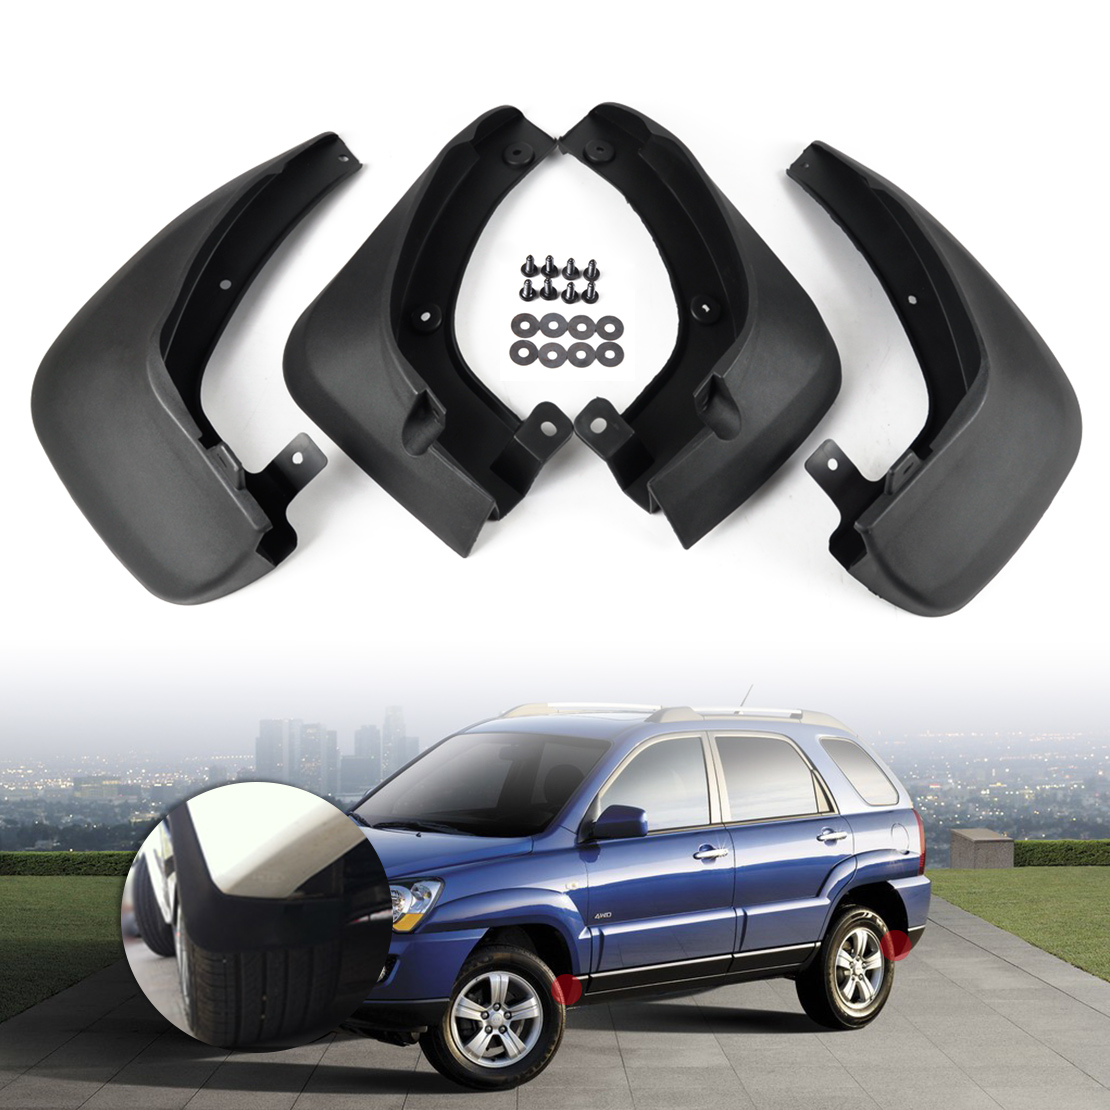 CITALL New Hot Mud Flaps Splash Guards Mudguard Mudflaps Fenders 4 PCS Black For KIA Sportage 2005 2006 2007 2008 2009 2010 все цены